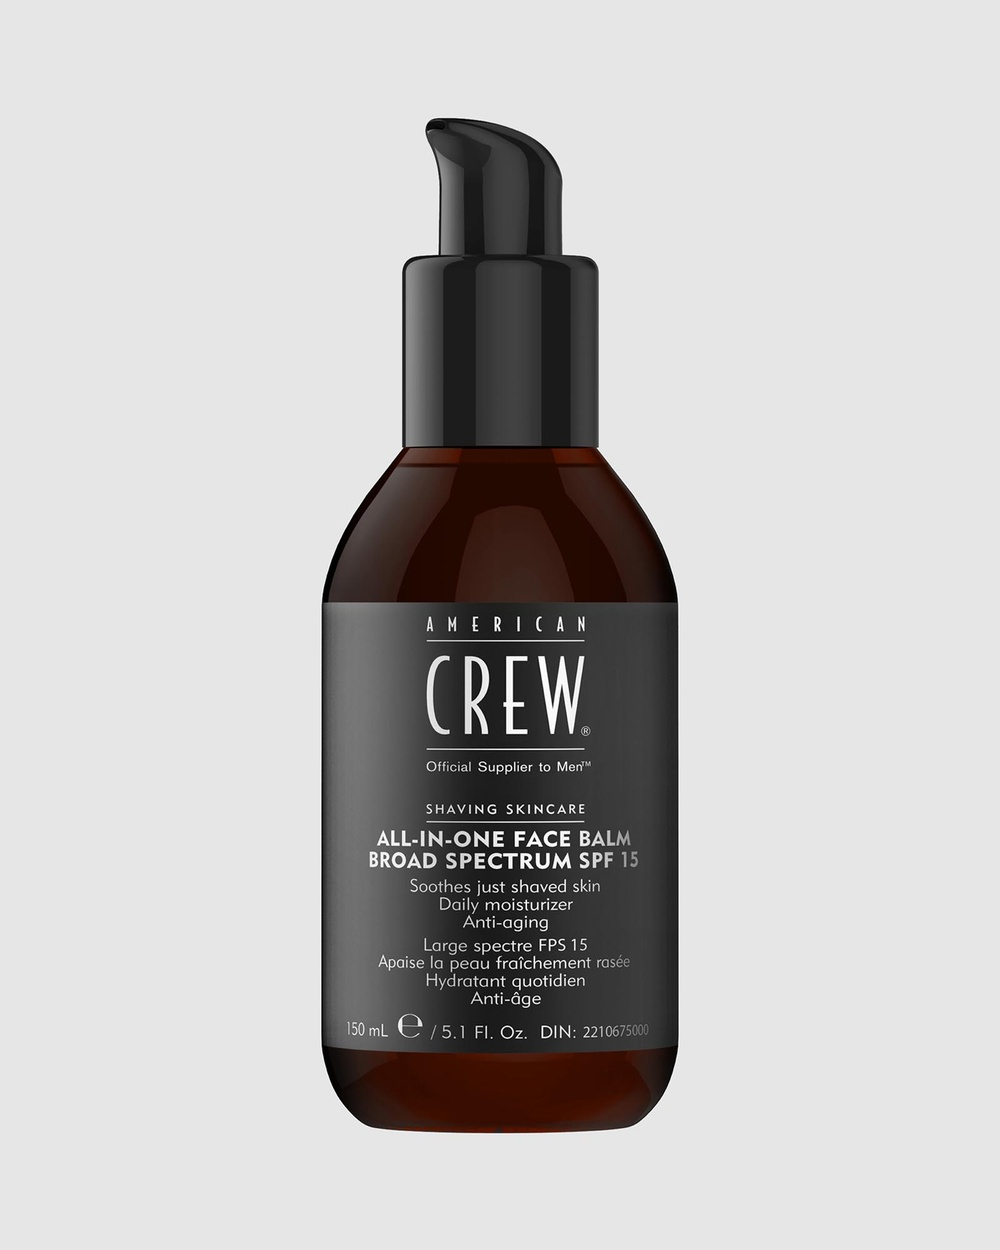 American Crew SSC All In One Face Balm SPF 15 150ml Beauty N/A All-In-One